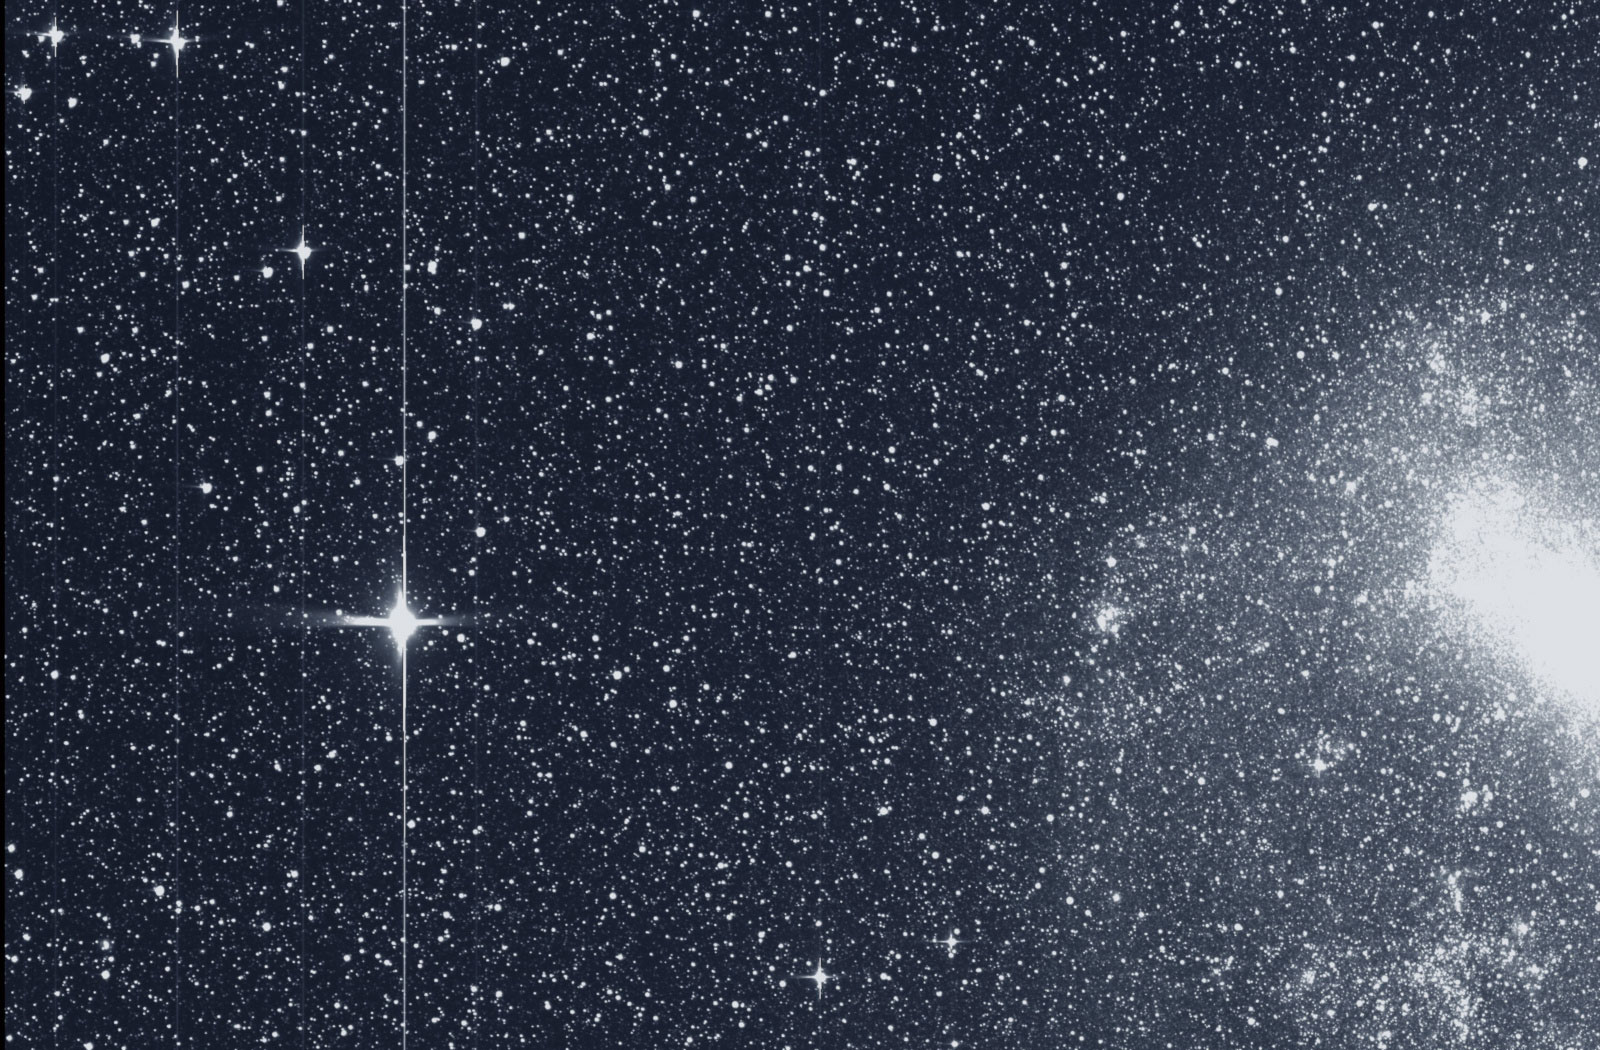 NASA's planet-hunting TESS spacecraft captures 'first light' image